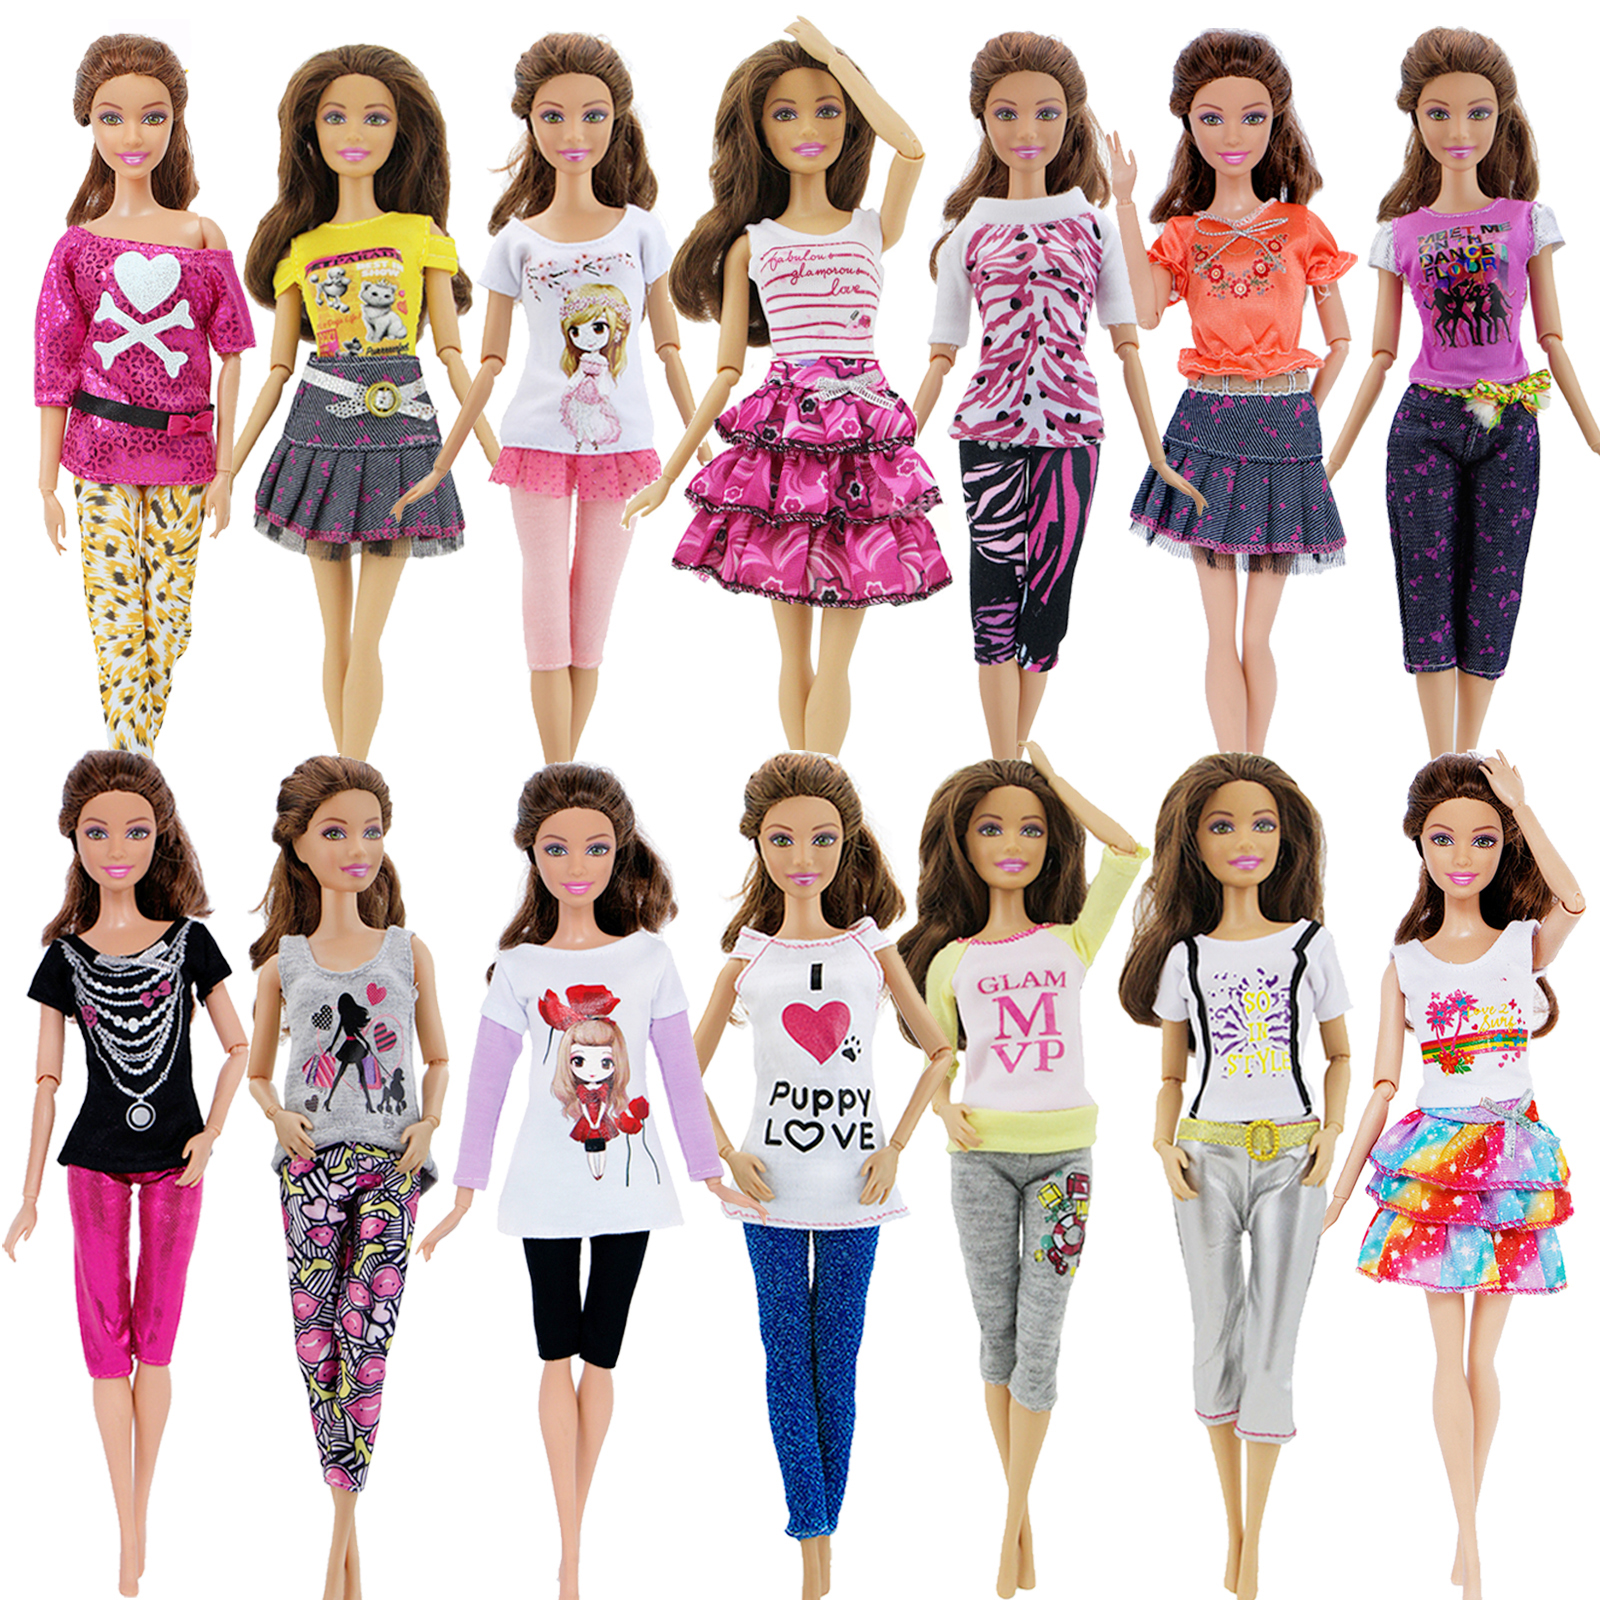 1x Fashion White  Cute Doll Clothes Dress Daily Casual Skirt Shirt Blouse Pants For Barbie Doll Accessories Lovely Girl Toy